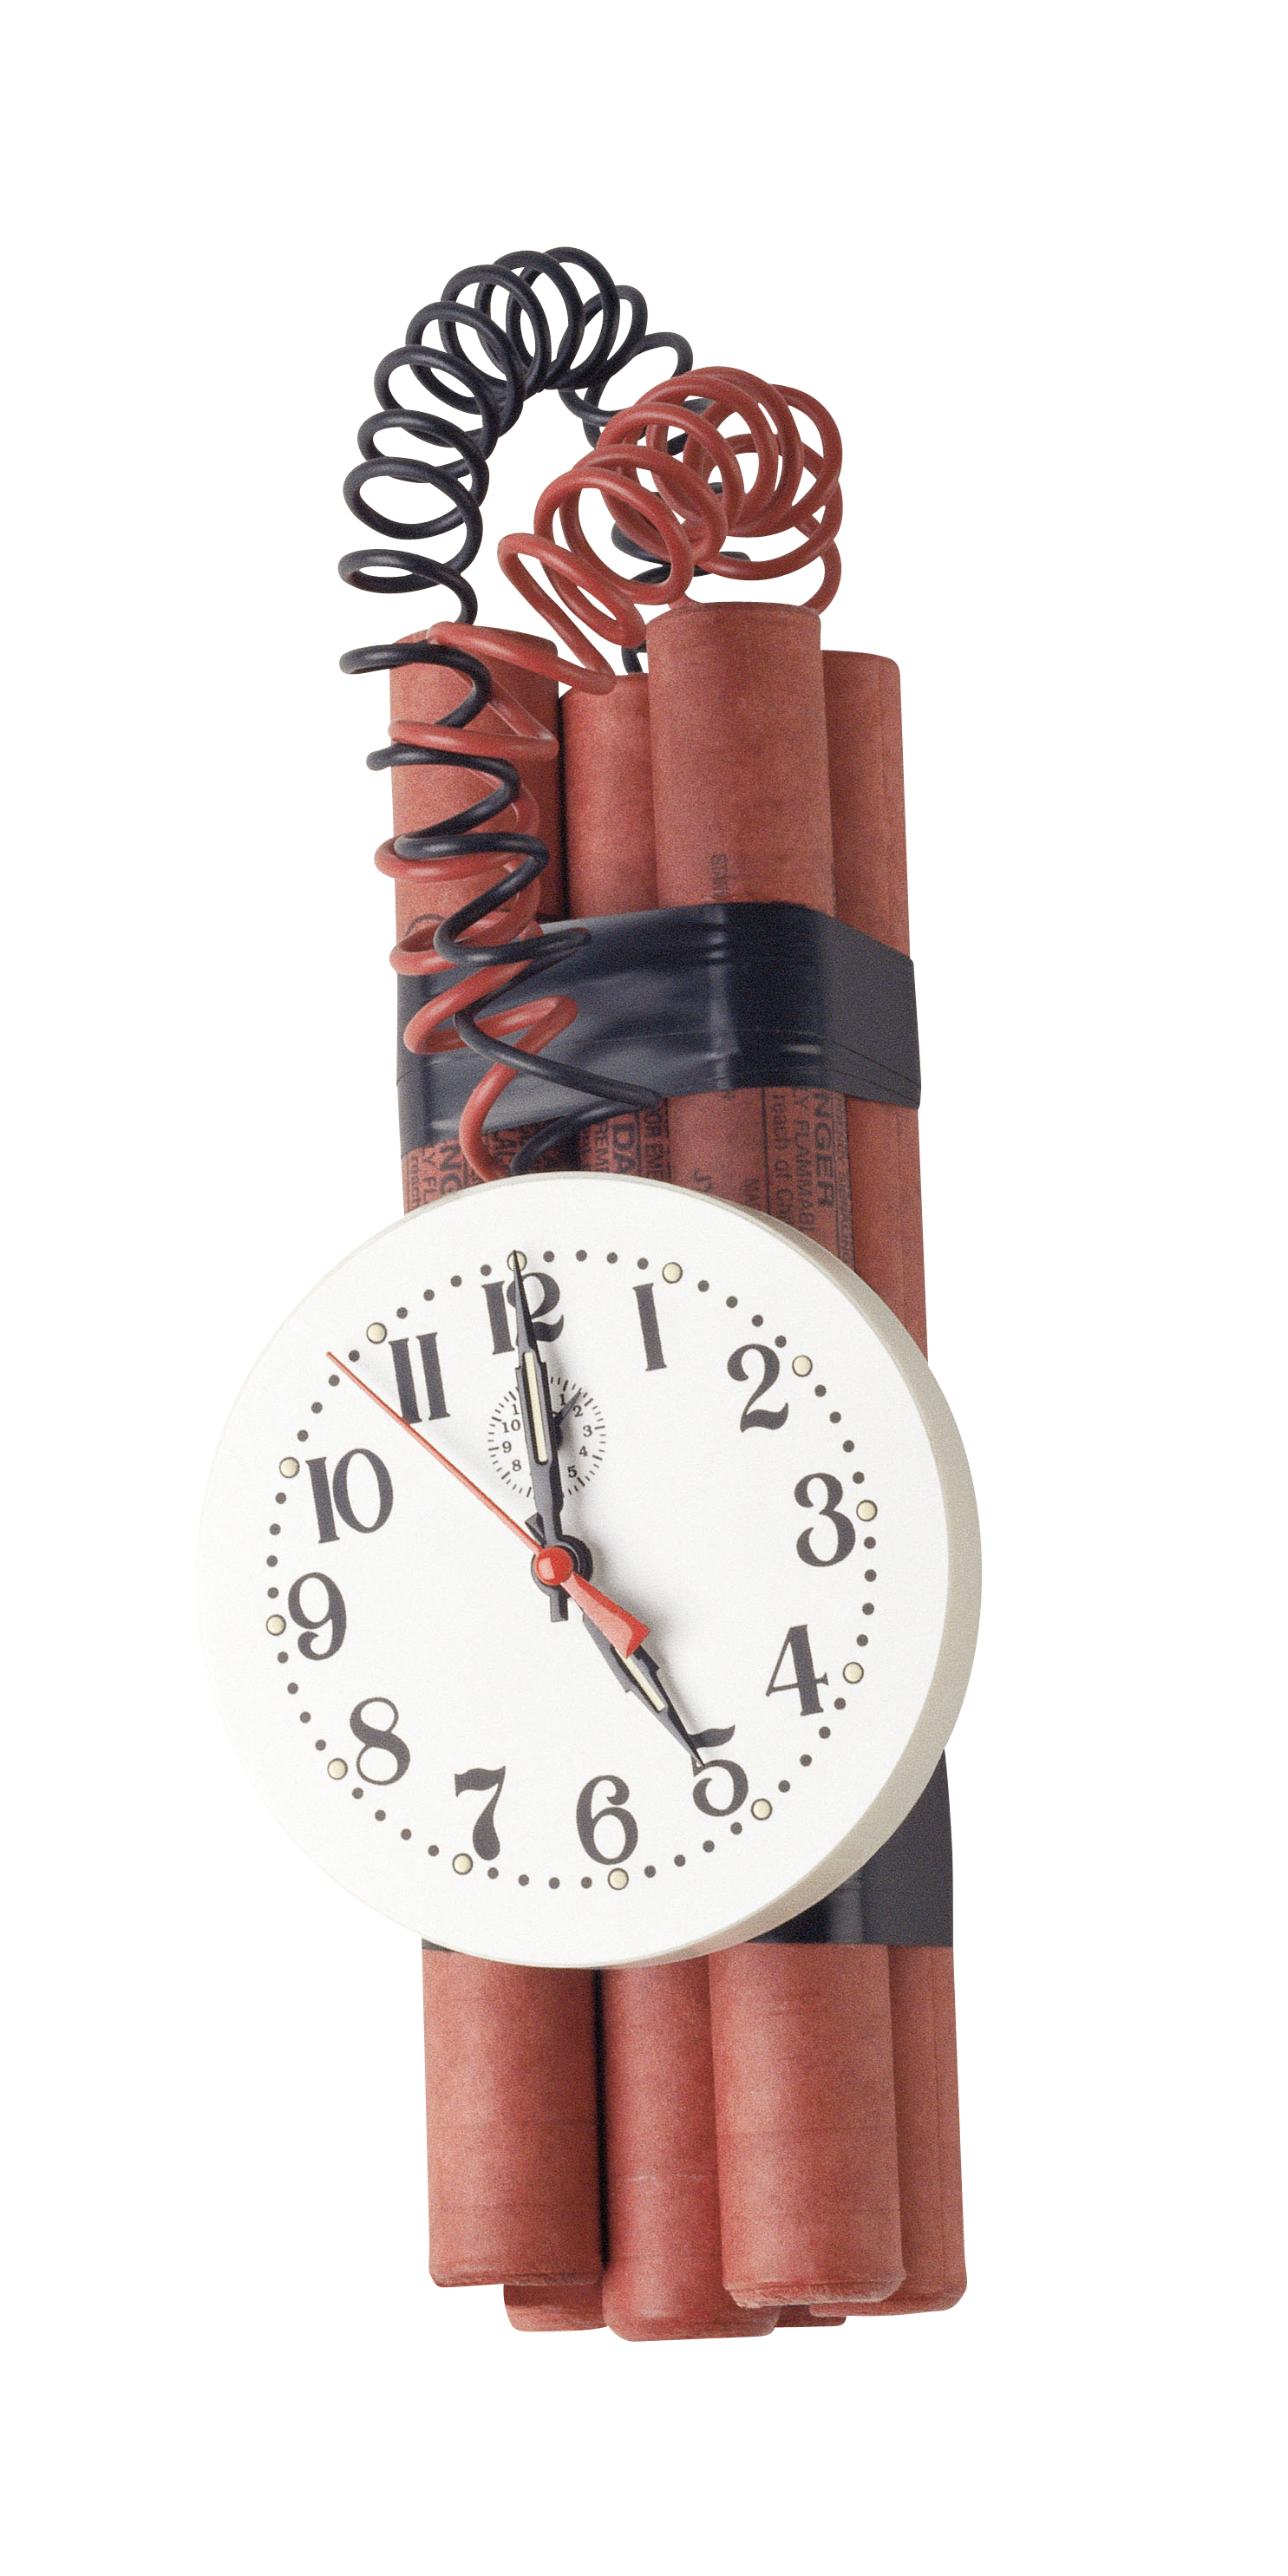 TimeBomb Free Transparent PNG